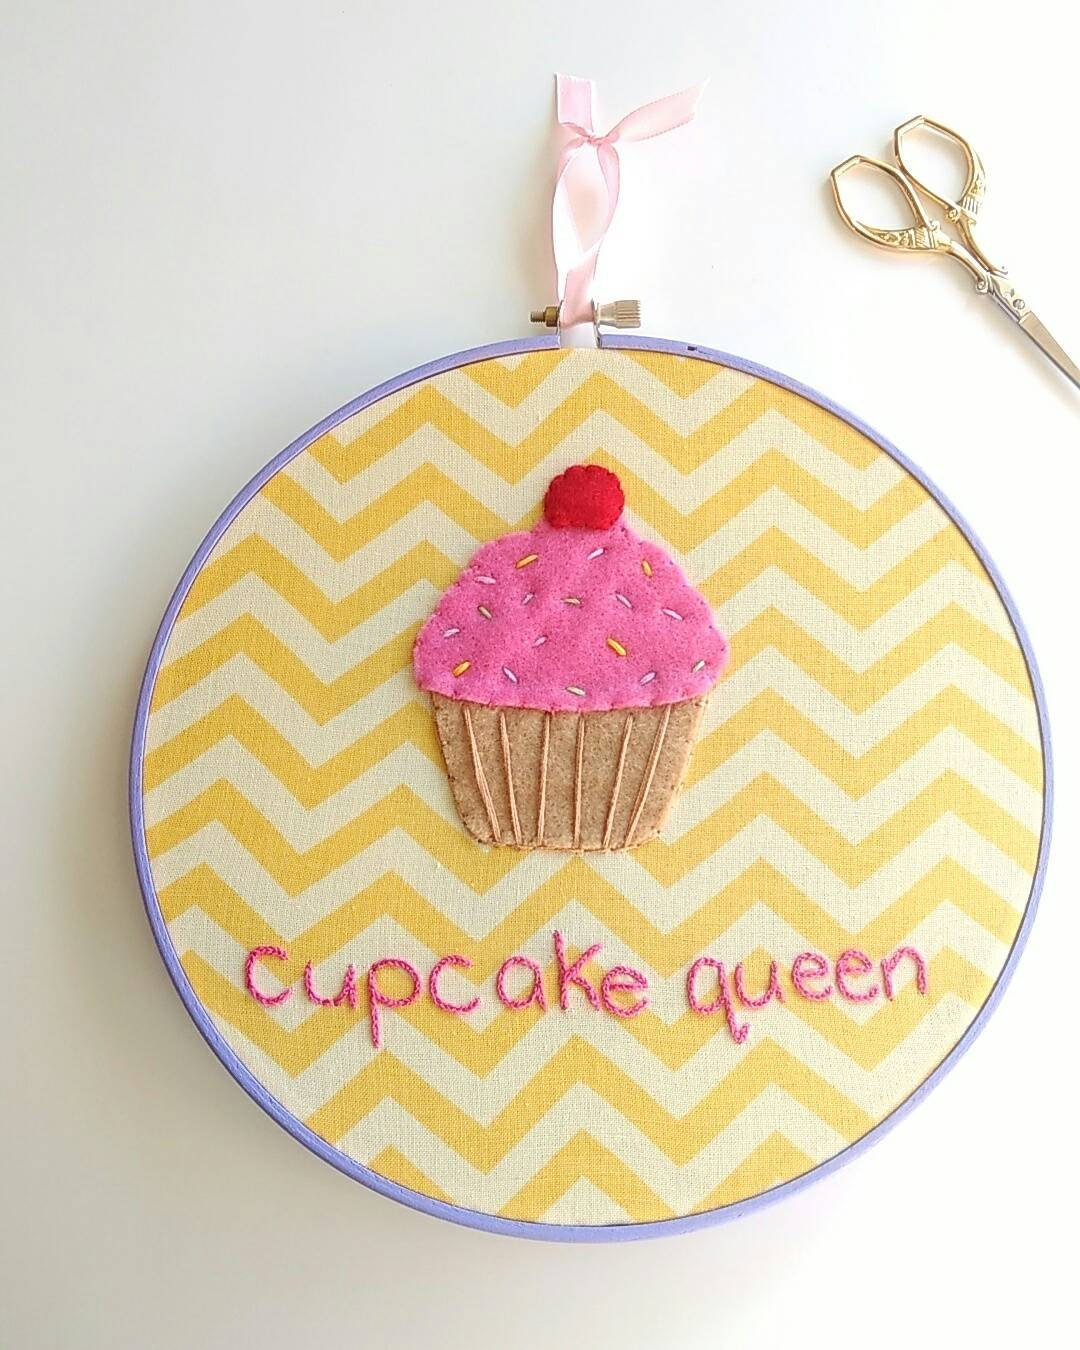 Cupcake queen embroidery hoop art embroidered